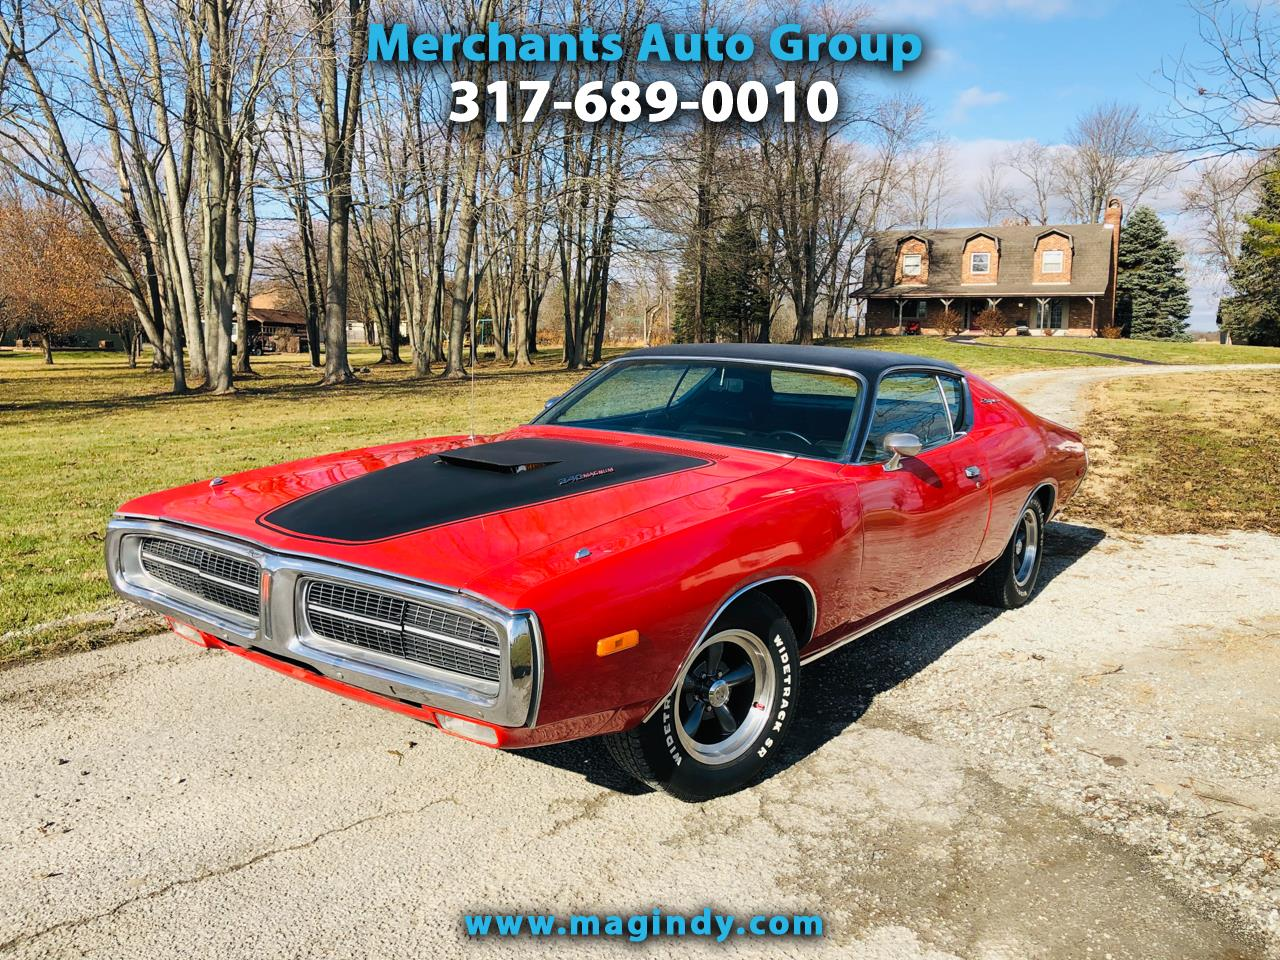 1972 Dodge Charger 2dr Coupe